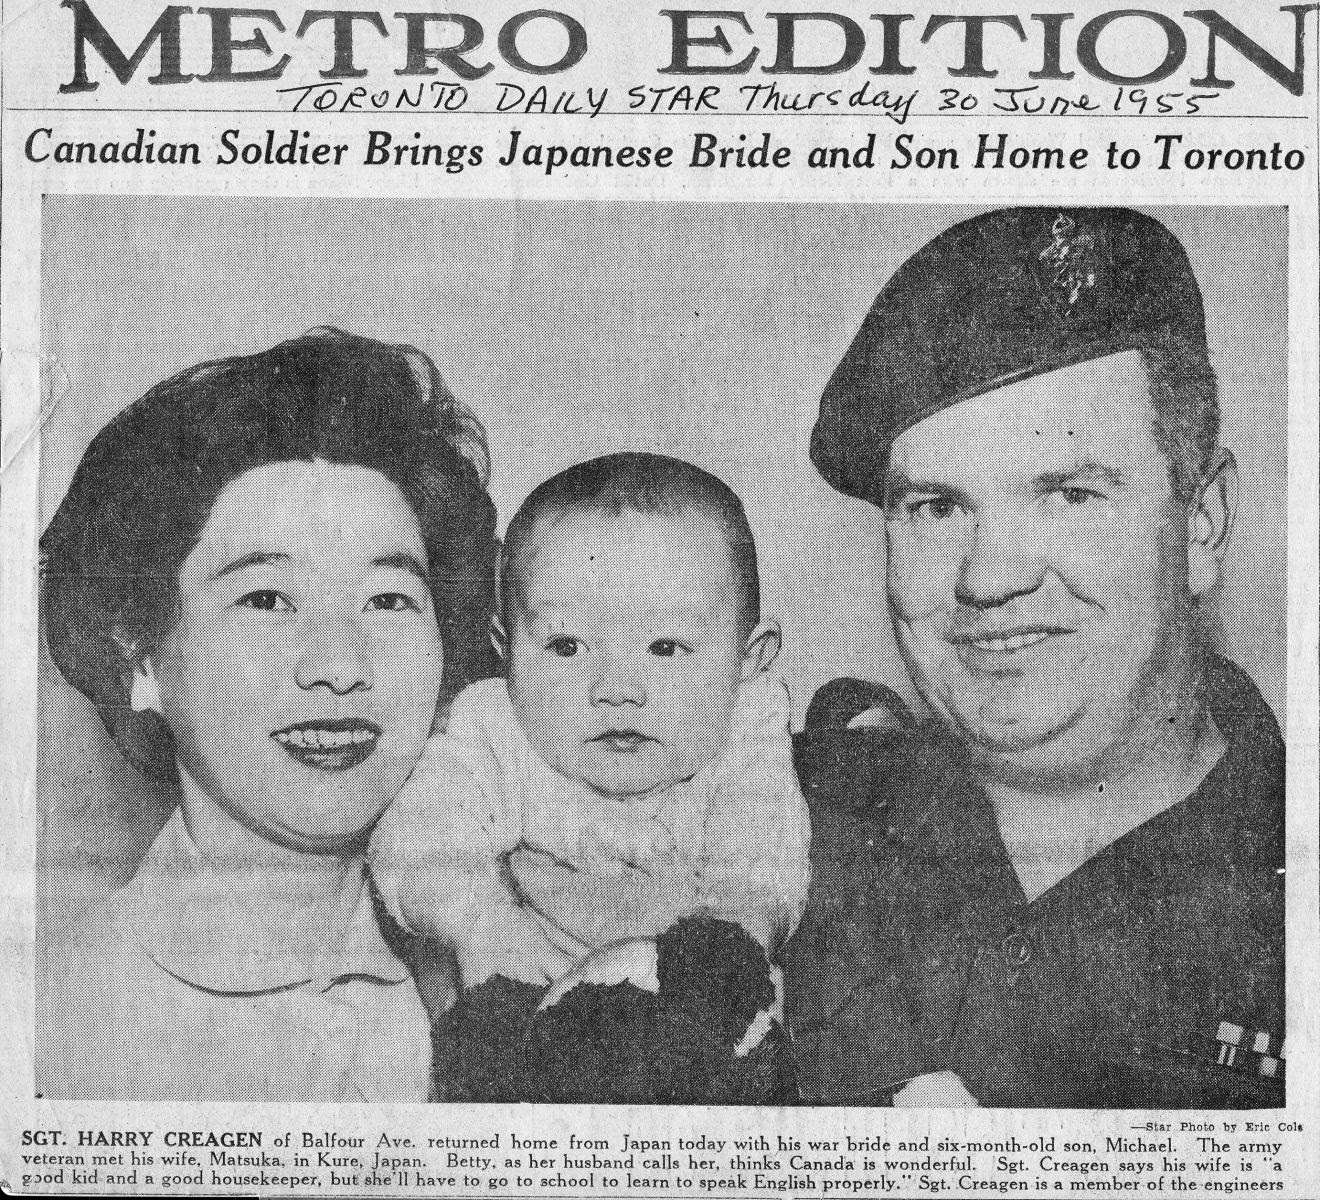 A soldier, a war bride, and a son